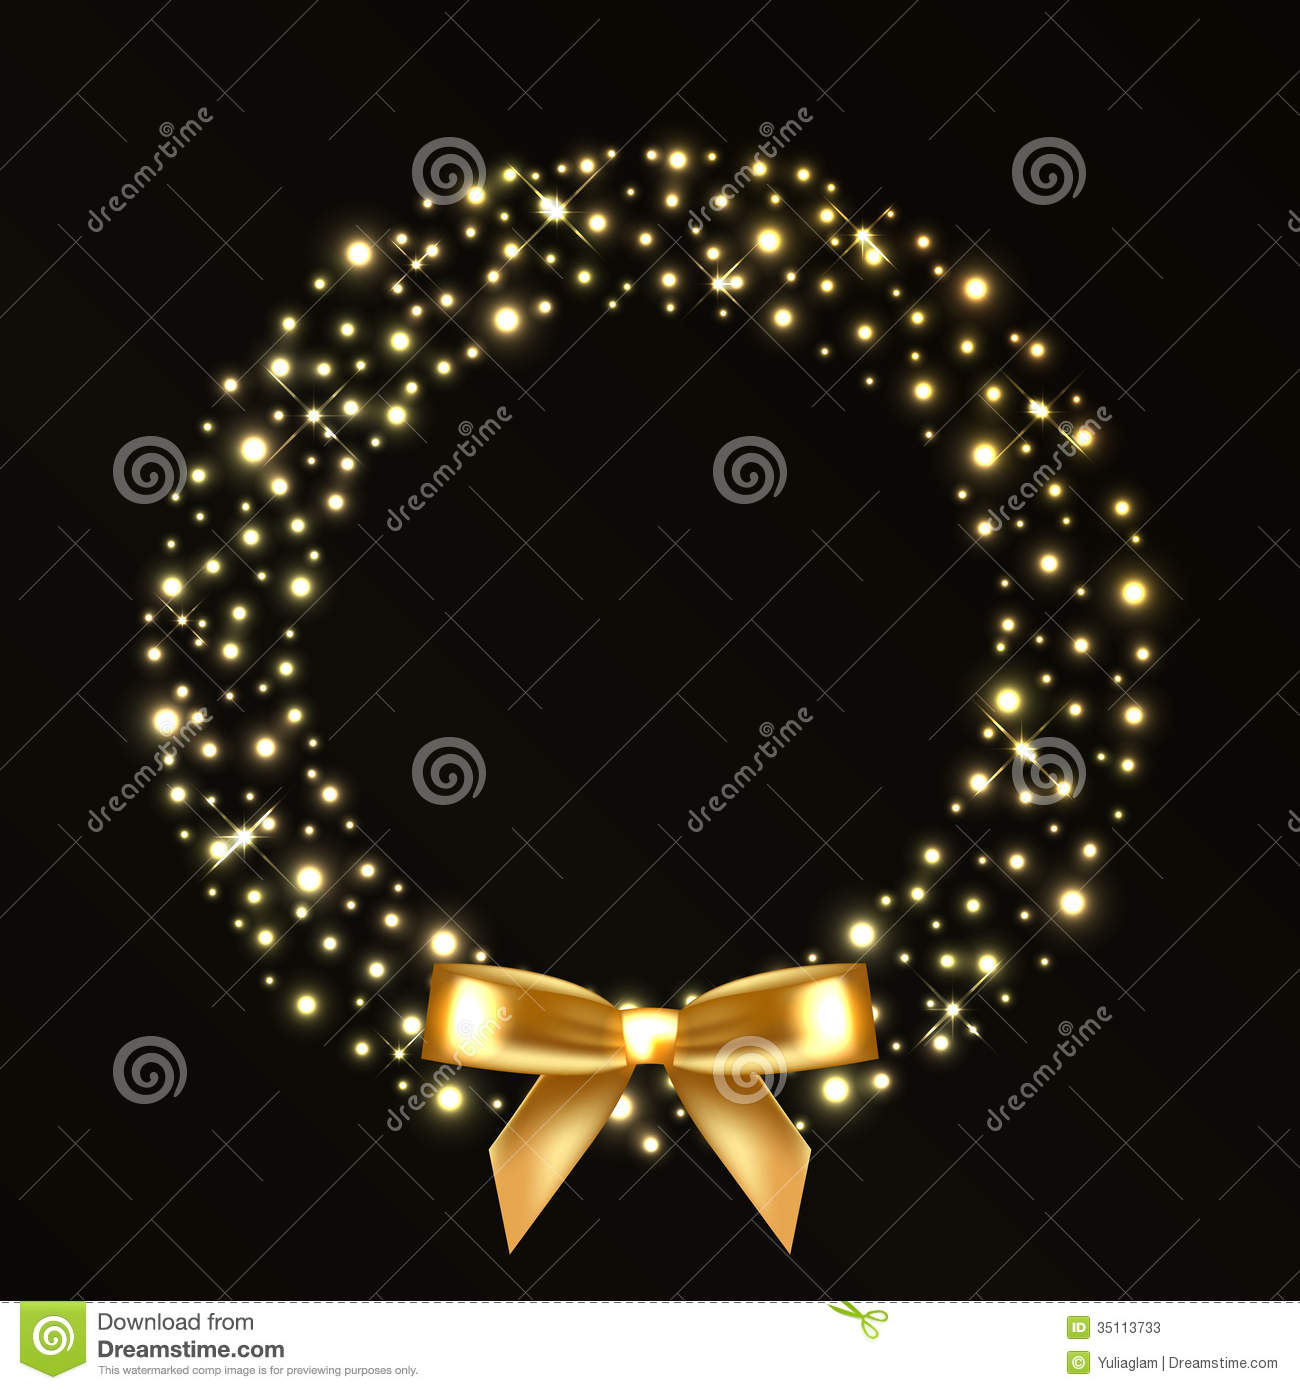 Christmas Wreath From Gold Lights Stock Vector ...